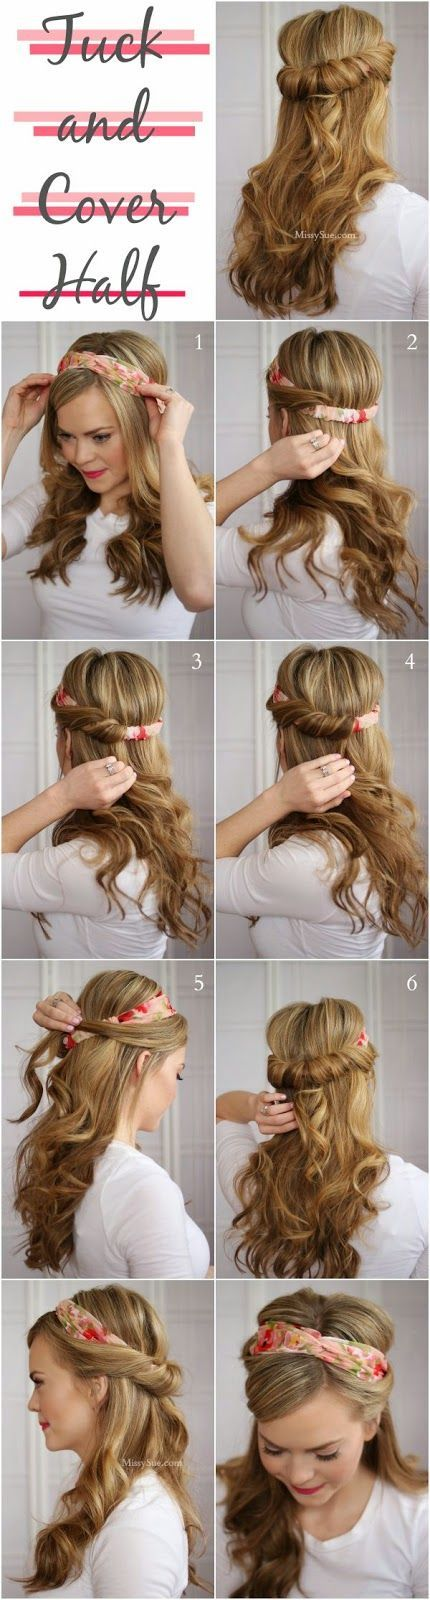 26 Lazy Girl Hairstyling Hacks spring and summer hairstyle ideas Latest Women Fashion